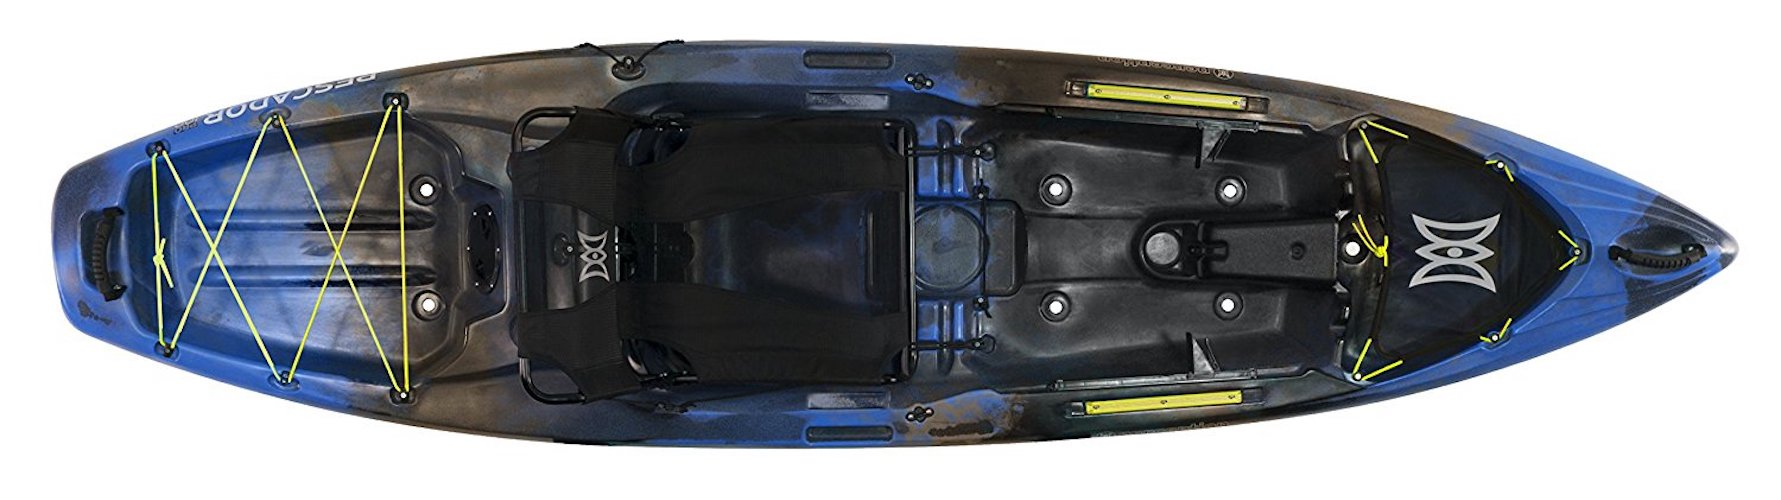 9. Perception Pescador Pro Sit on Top Kayak for Fishing